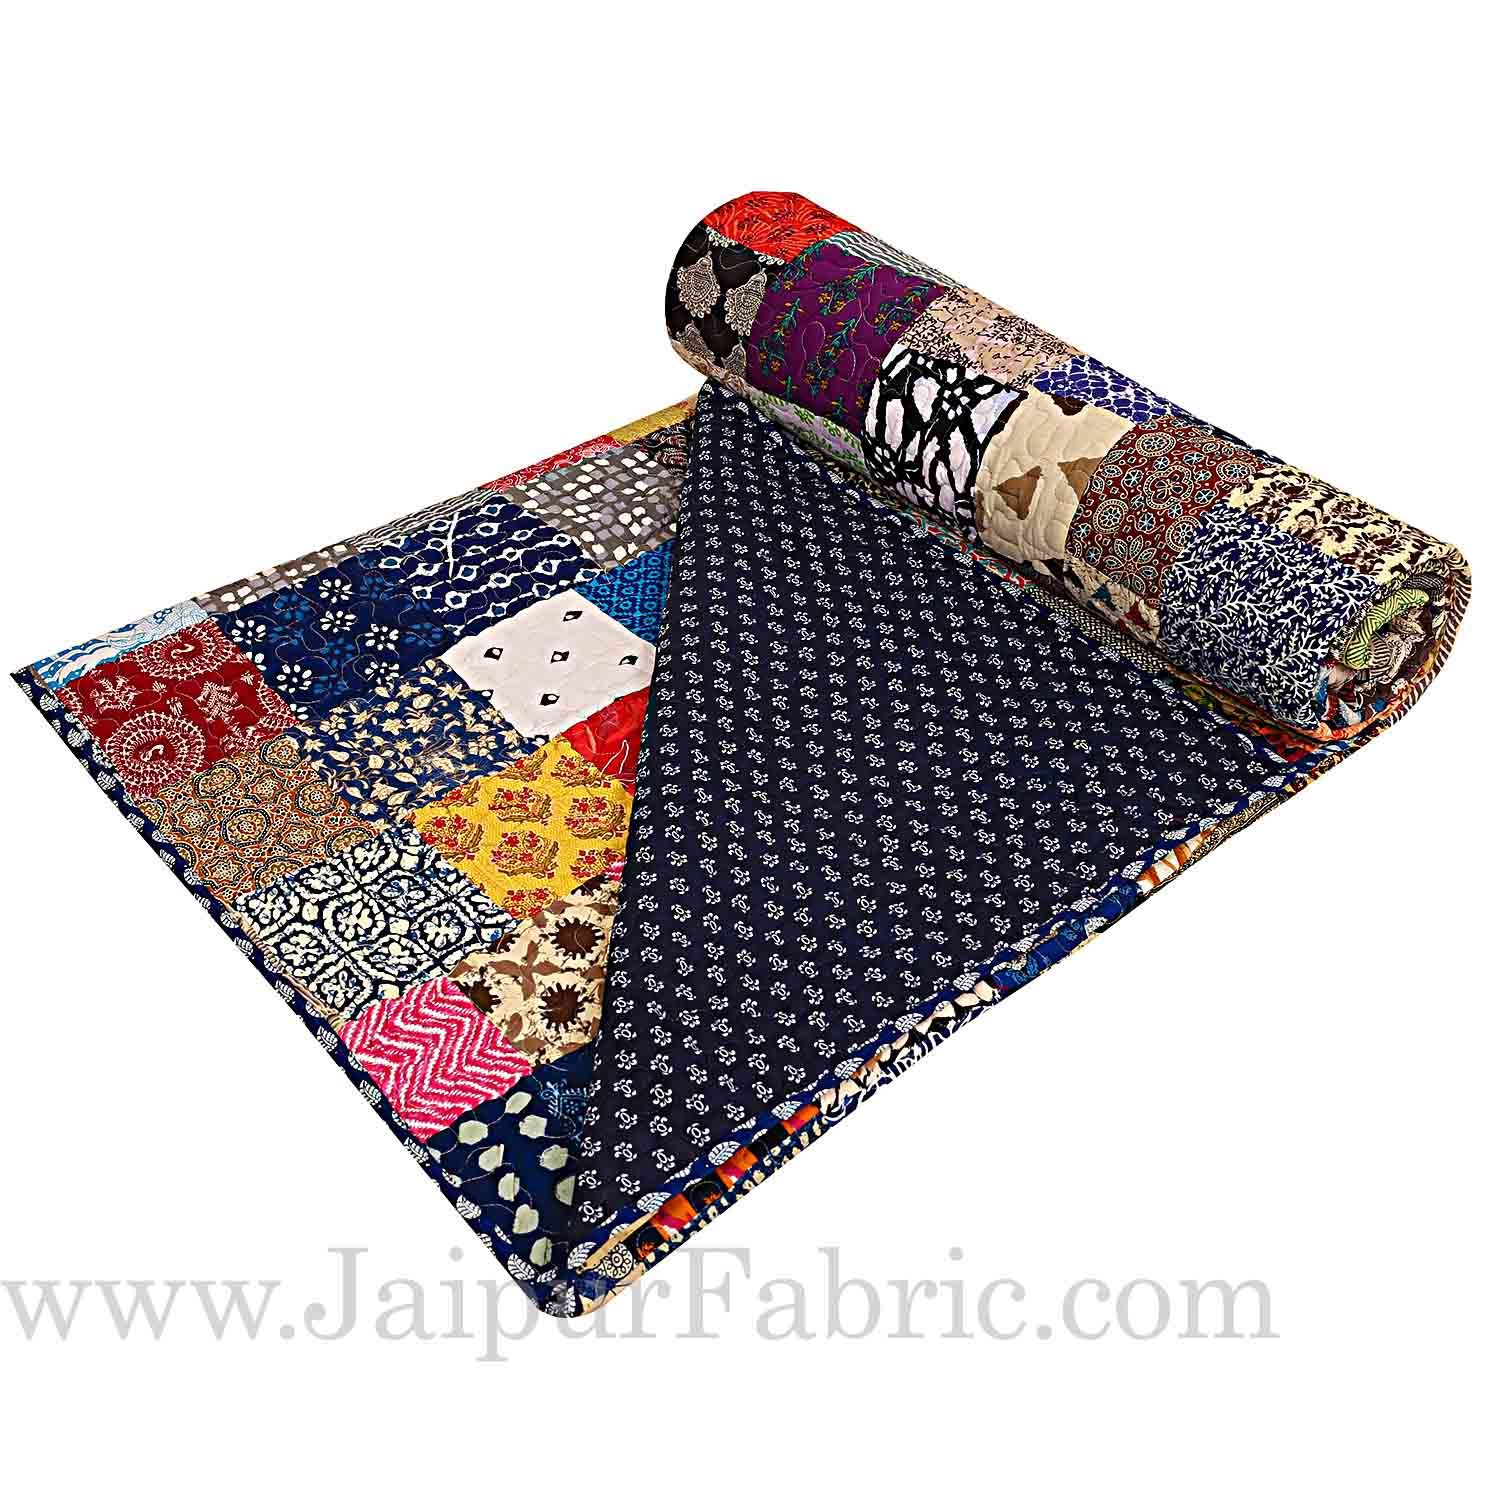 Patchwork AC Quilt/Blanket Soft Designer Double Bed - Multicolor (Multi)